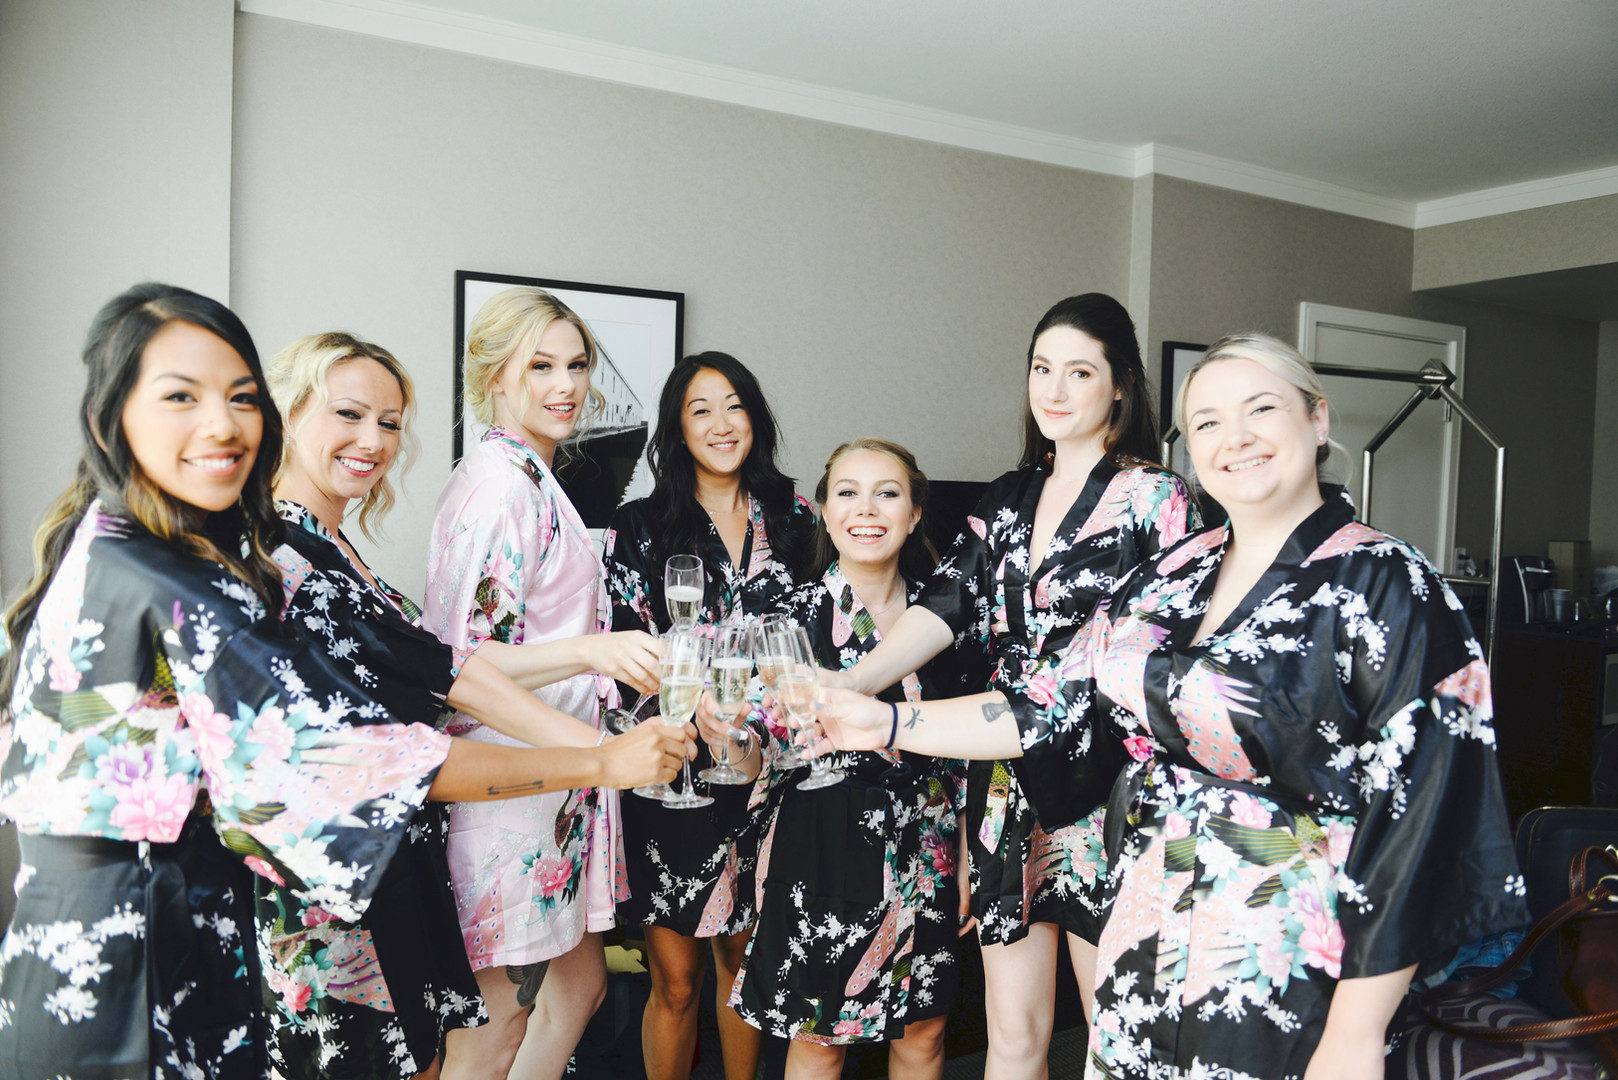 Wedding Party Floral Robes